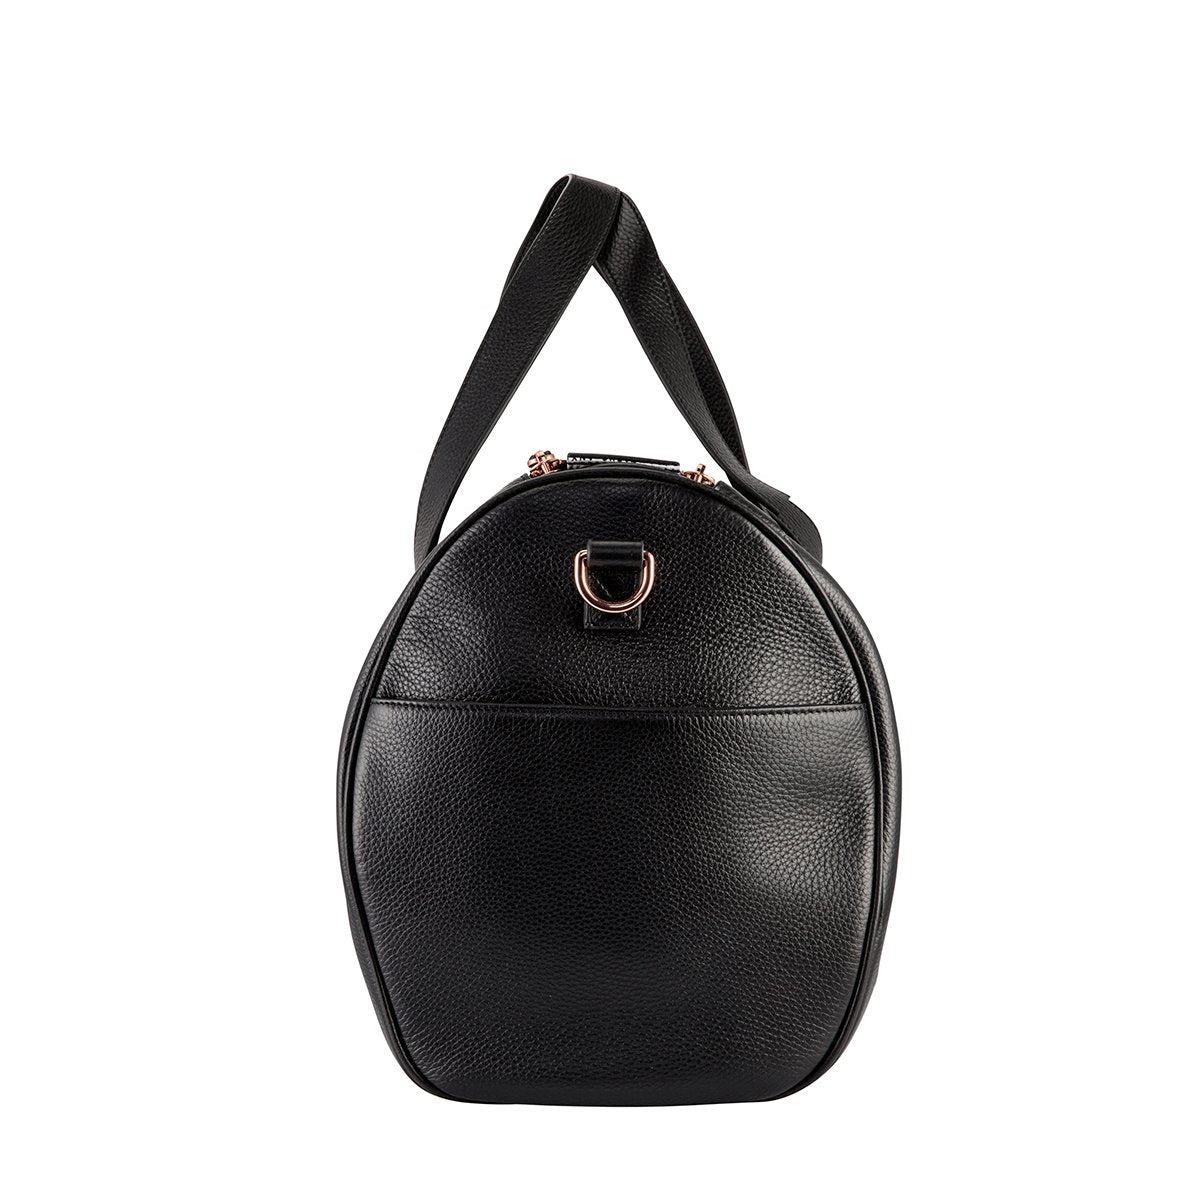 end view of status anxiety deep end handbag